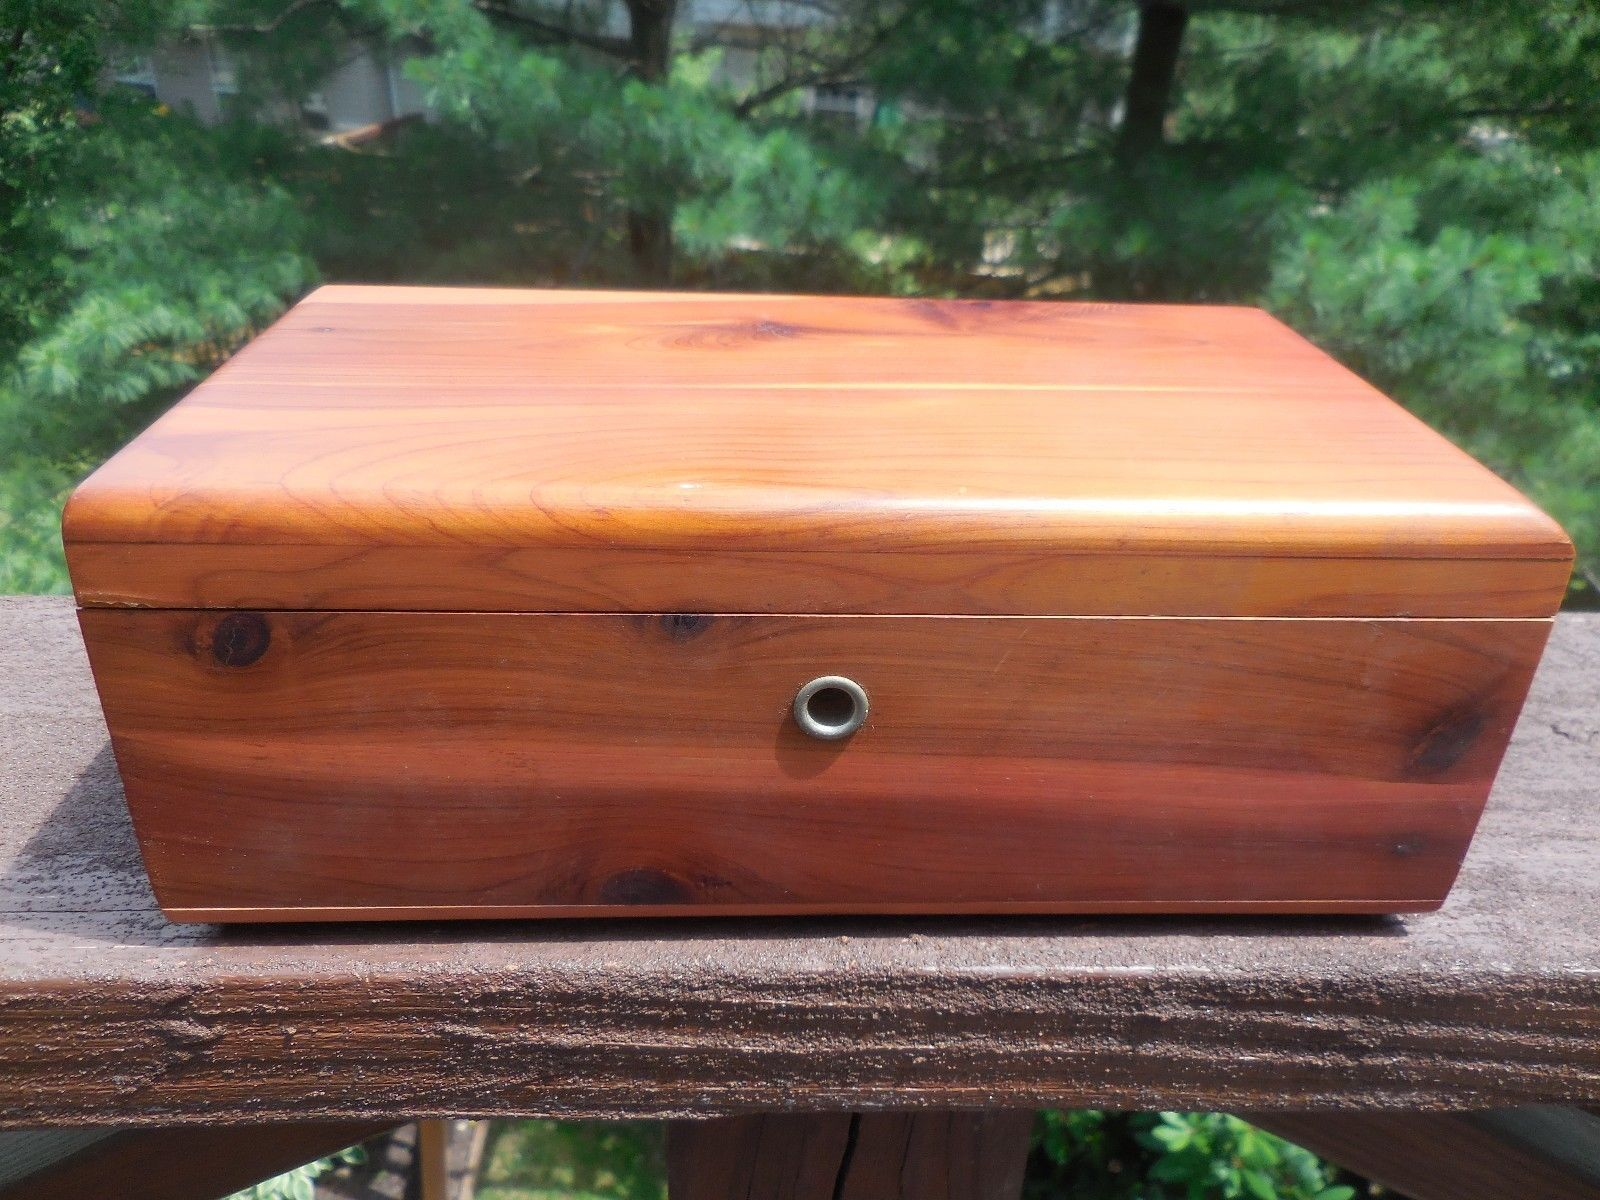 LANE MINI CEDAR CHEST ROCKFORD FURNITURE WOODBRIDGE ELIZABETH NEW JERSEY